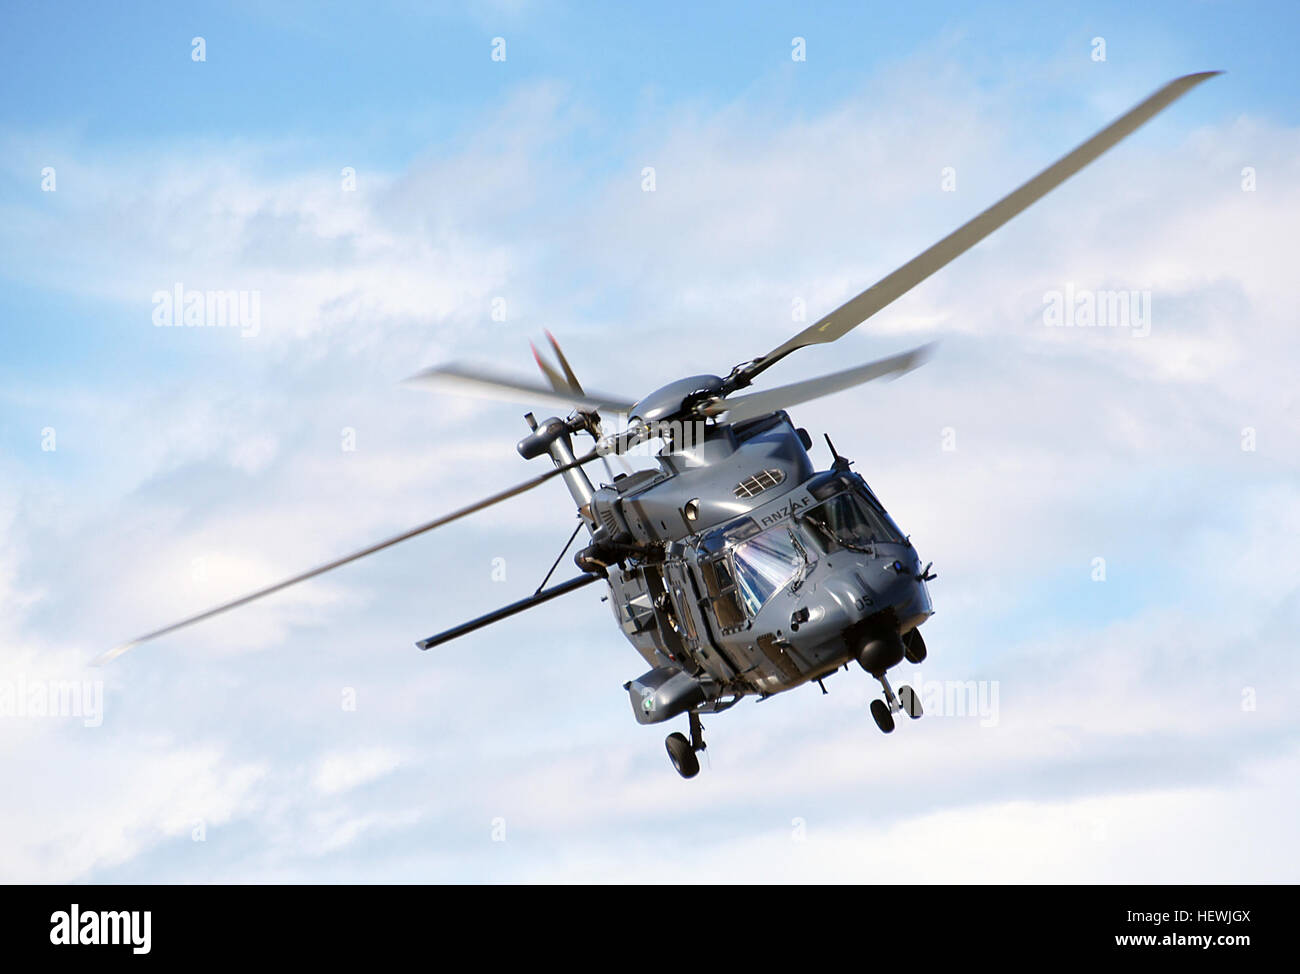 The NH90 is an advanced medium utility helicopter, capable of undertaking a wide variety of roles in New Zealand - Stock Image